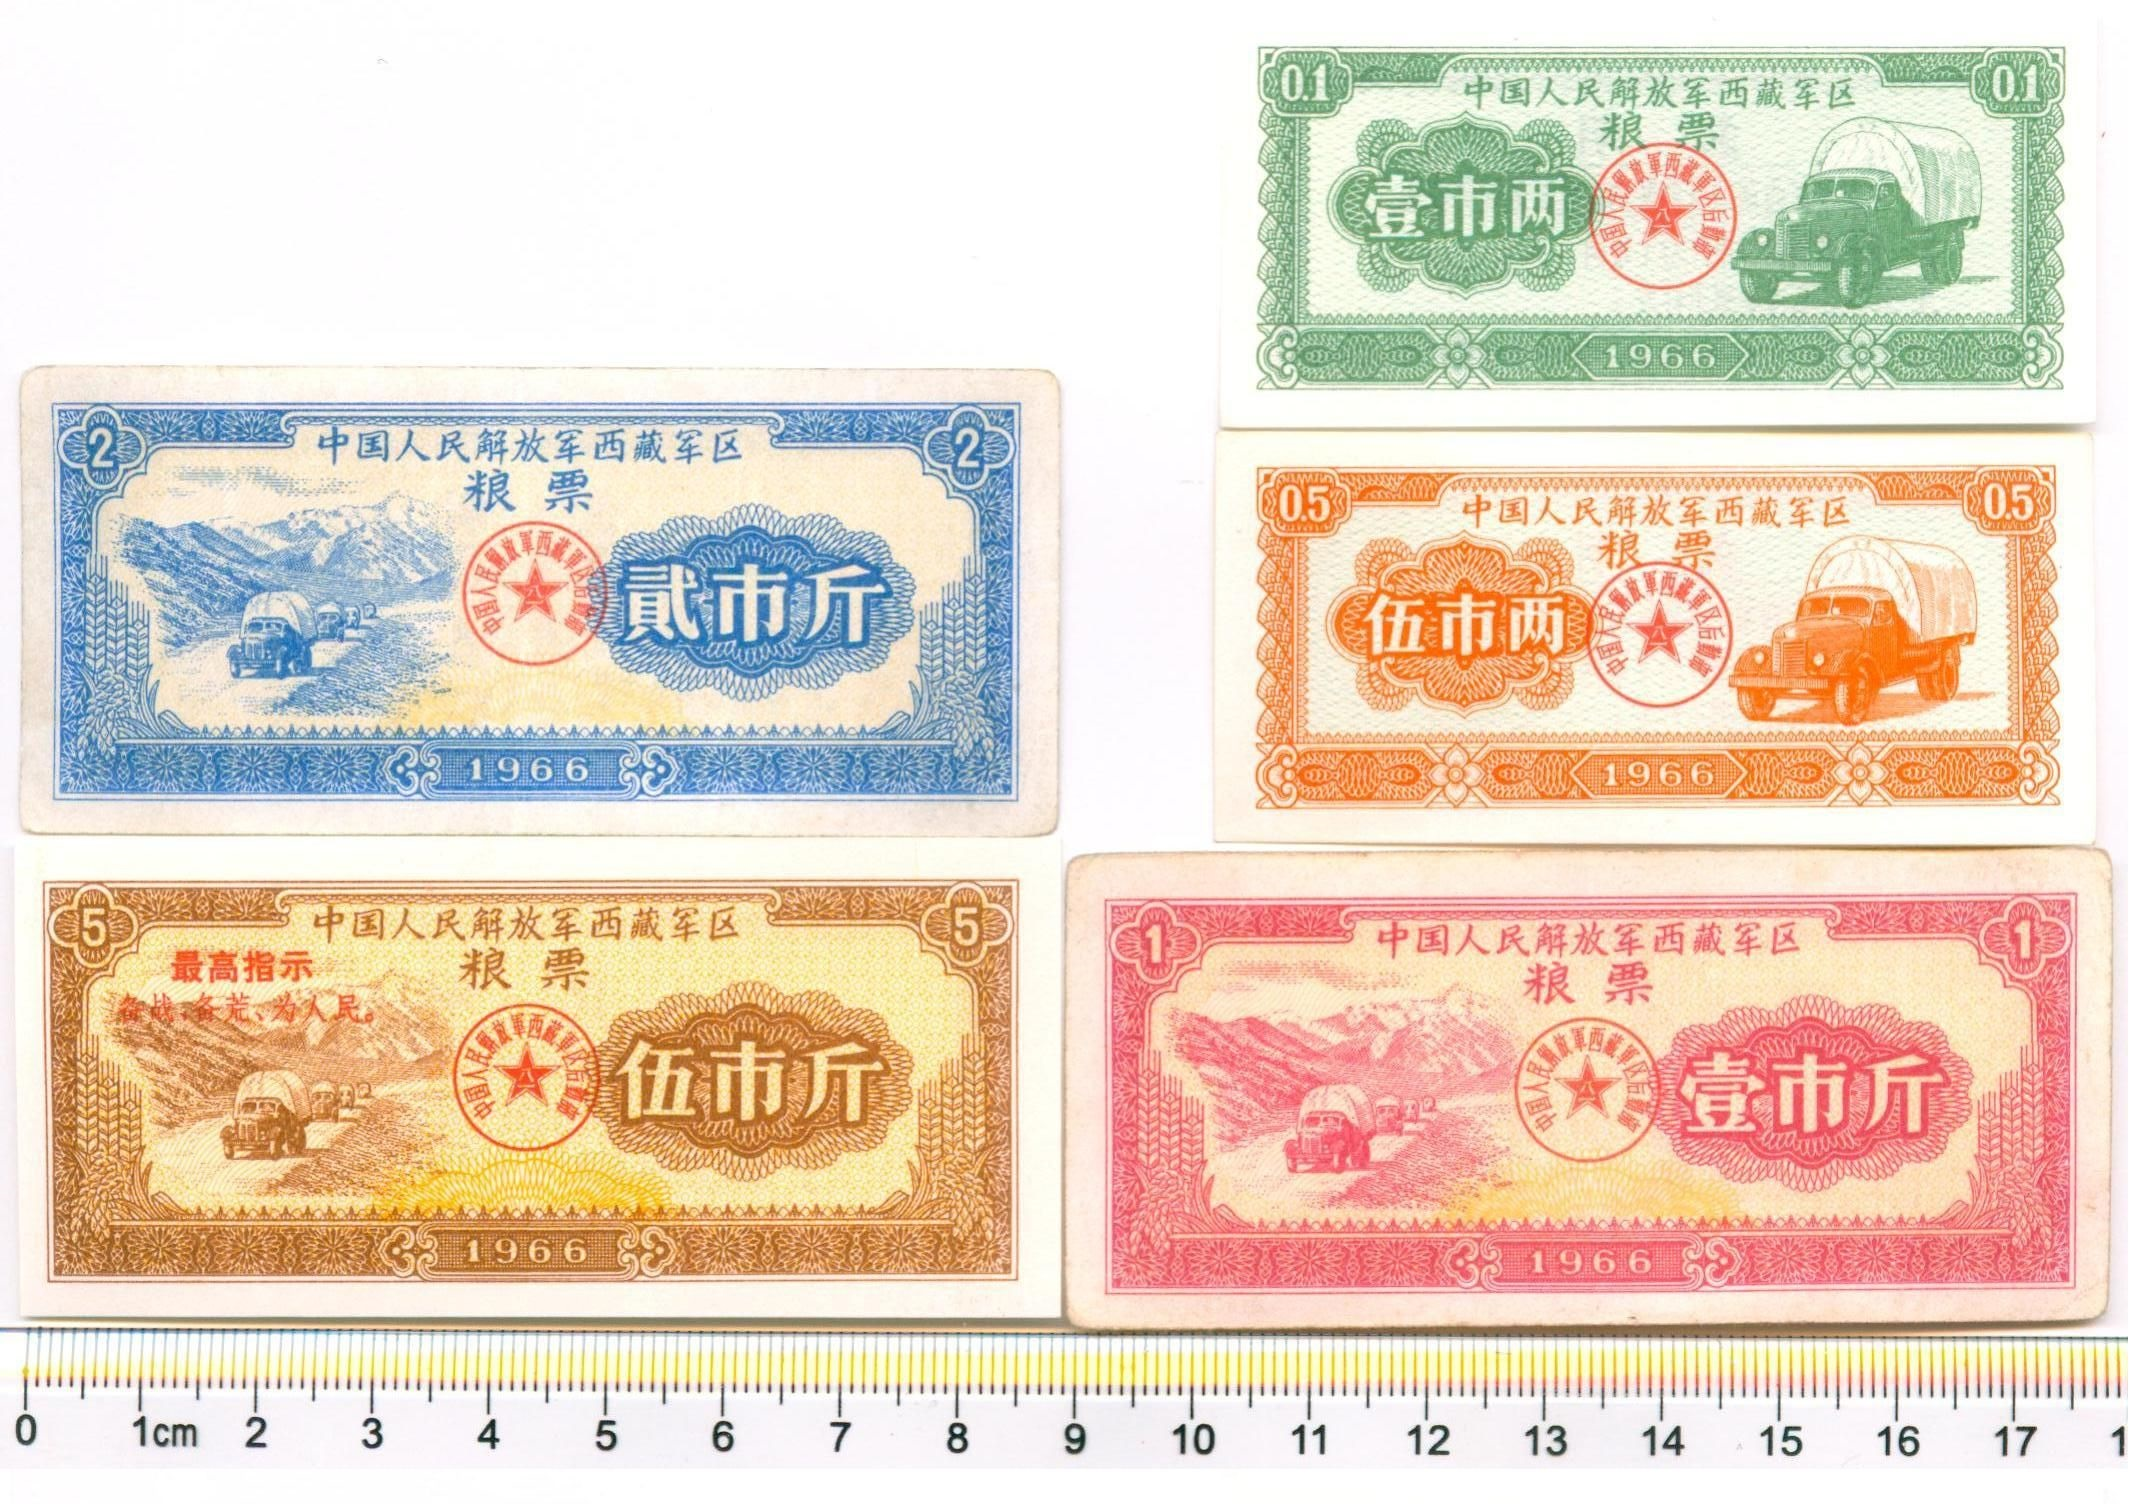 H7022, Tibetan Military Rice Ration Coupon, 5 Pcs, 1966 Issue